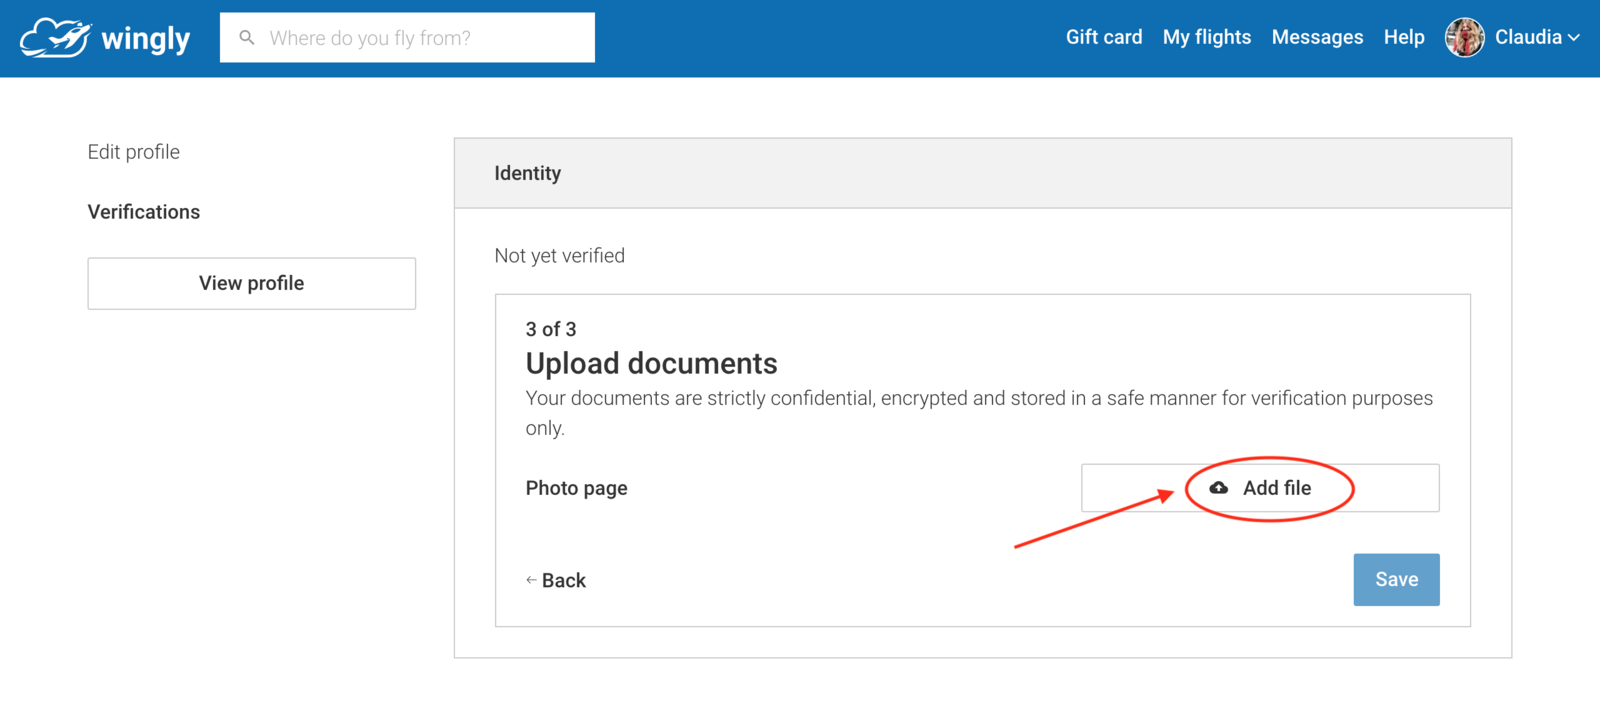 You can upload your files here by clicking on add file